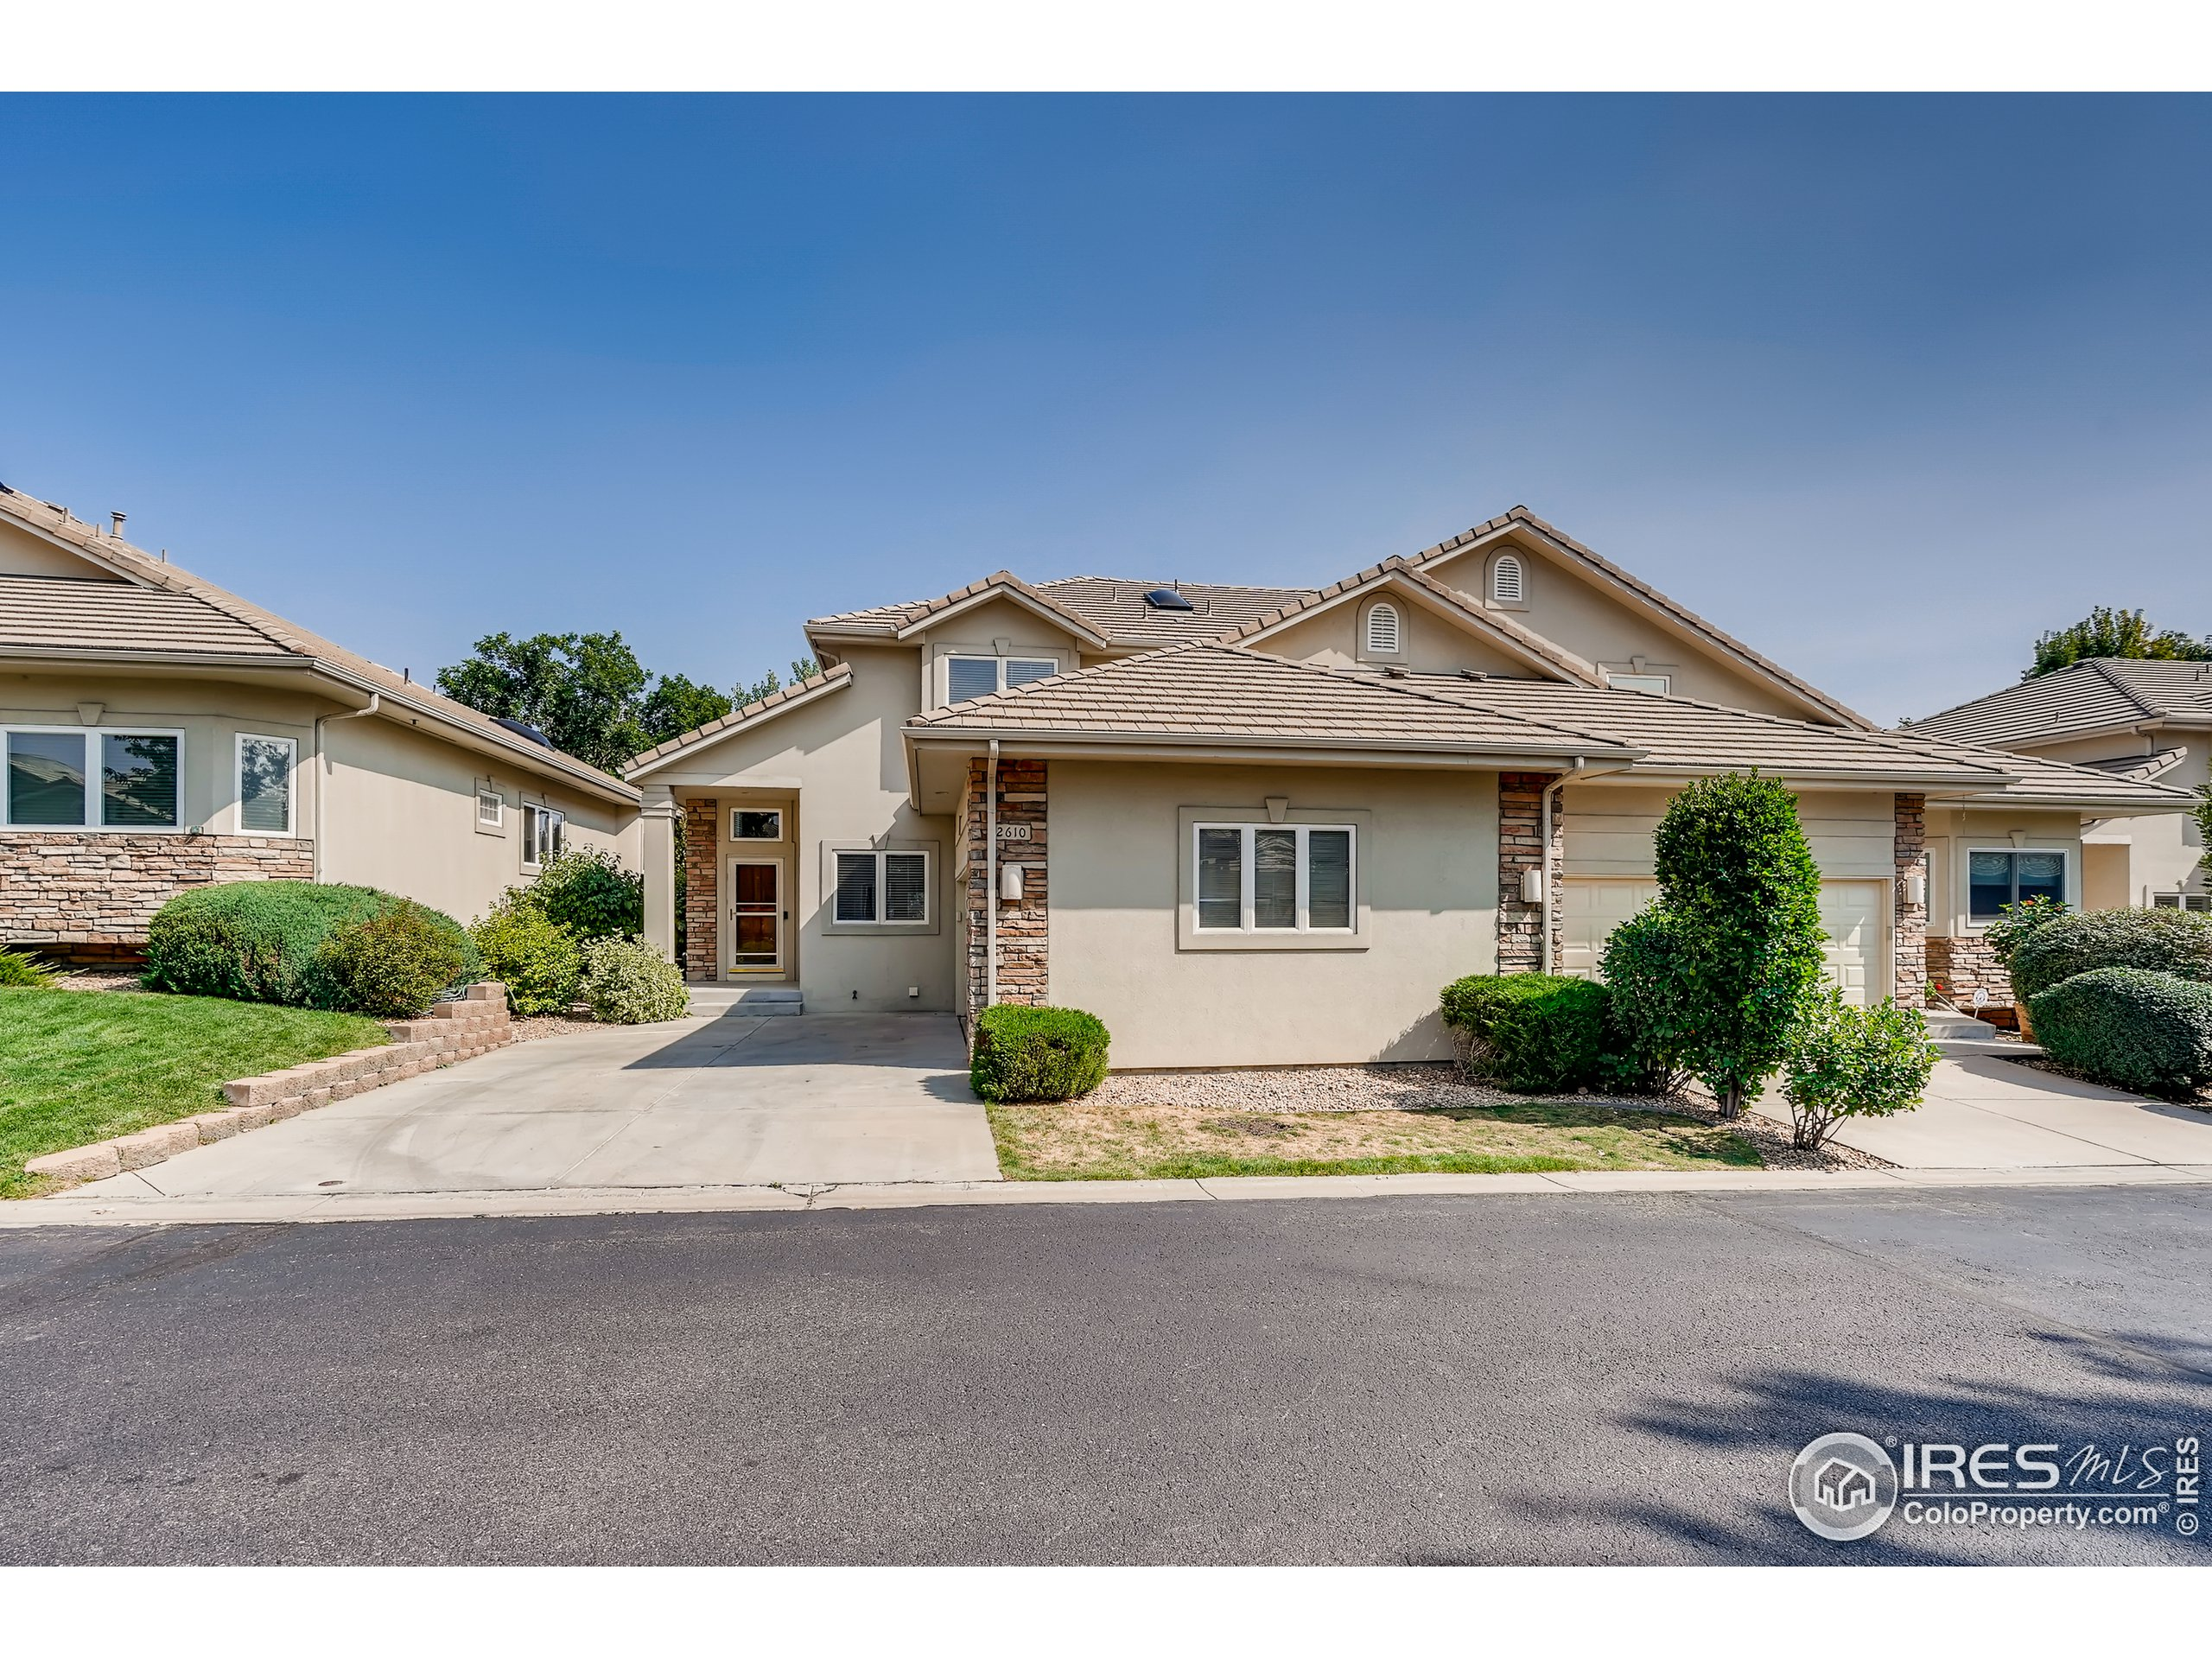 Fall in love with this stylish 4 bedroom, 3 bathroom home in a quiet, gated neighborhood in Lakewood. Upon entering you will immediately notice the gorgeous 2 story foyer and richly-appointed spaces. The main living area is an open concept layout with a warm, inviting living room that provides a stone covered gas fireplace to warm up on a cold winter night. The gourmet kitchen is outfitted with stainless steel appliances, granite countertops, a sleek backsplash, a breakfast bar, and a breakfast nook for entertaining. This home benefits from 2 primary bedrooms that include an en-suite bathroom complete with a soaking tub and a separate shower. The main floor primary bedroom offers direct access to the back deck and the upstairs primary bedroom features spacious closet space with an island and skylight. Additional highlights include a laundry room with overhead storage and an attached 2 car garage. Conveniently located near Red Rocks and much more.